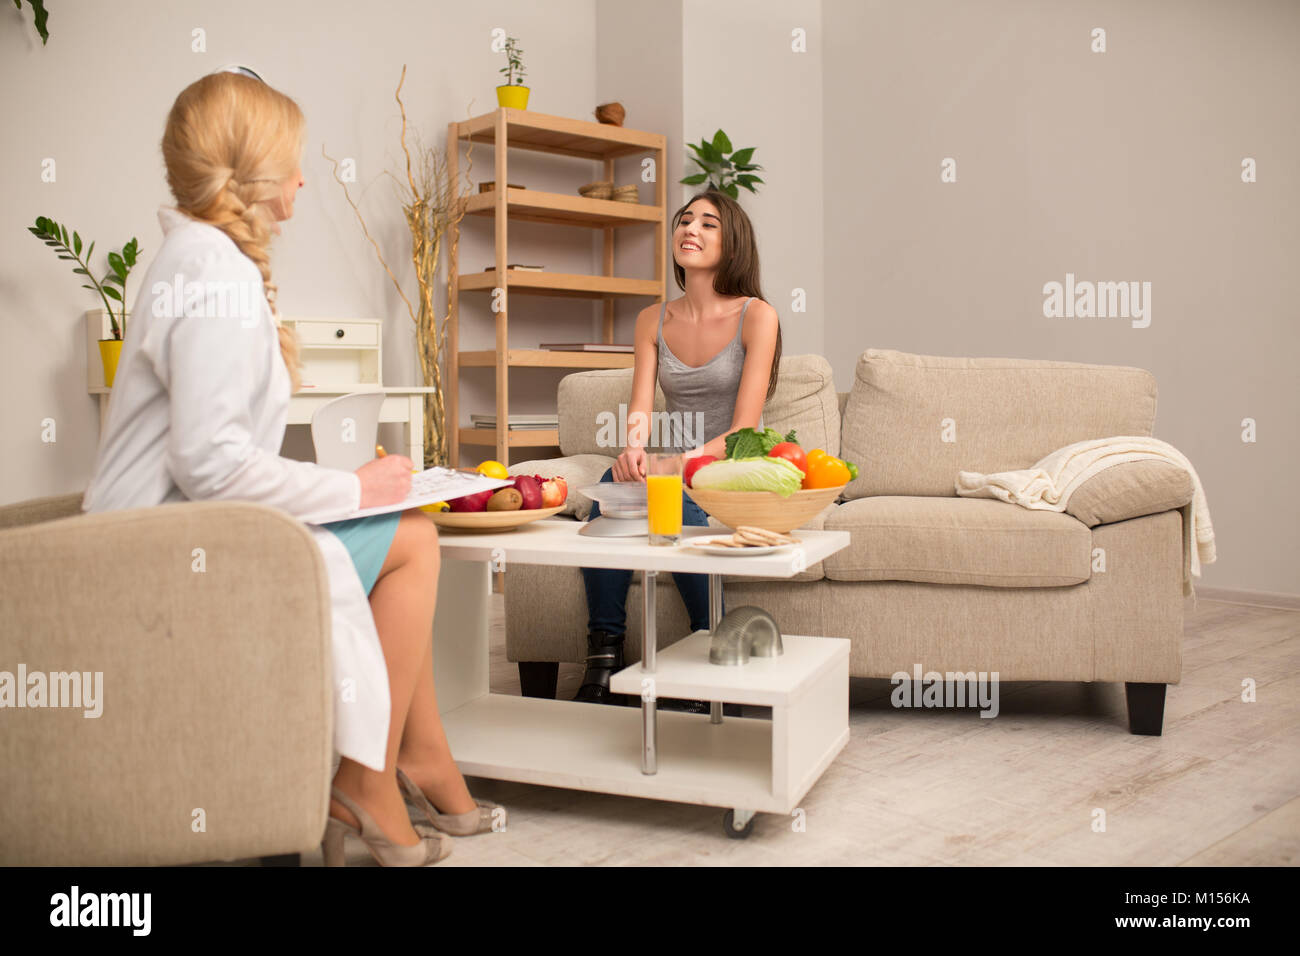 Proffessional dietitian consultation - Stock Image